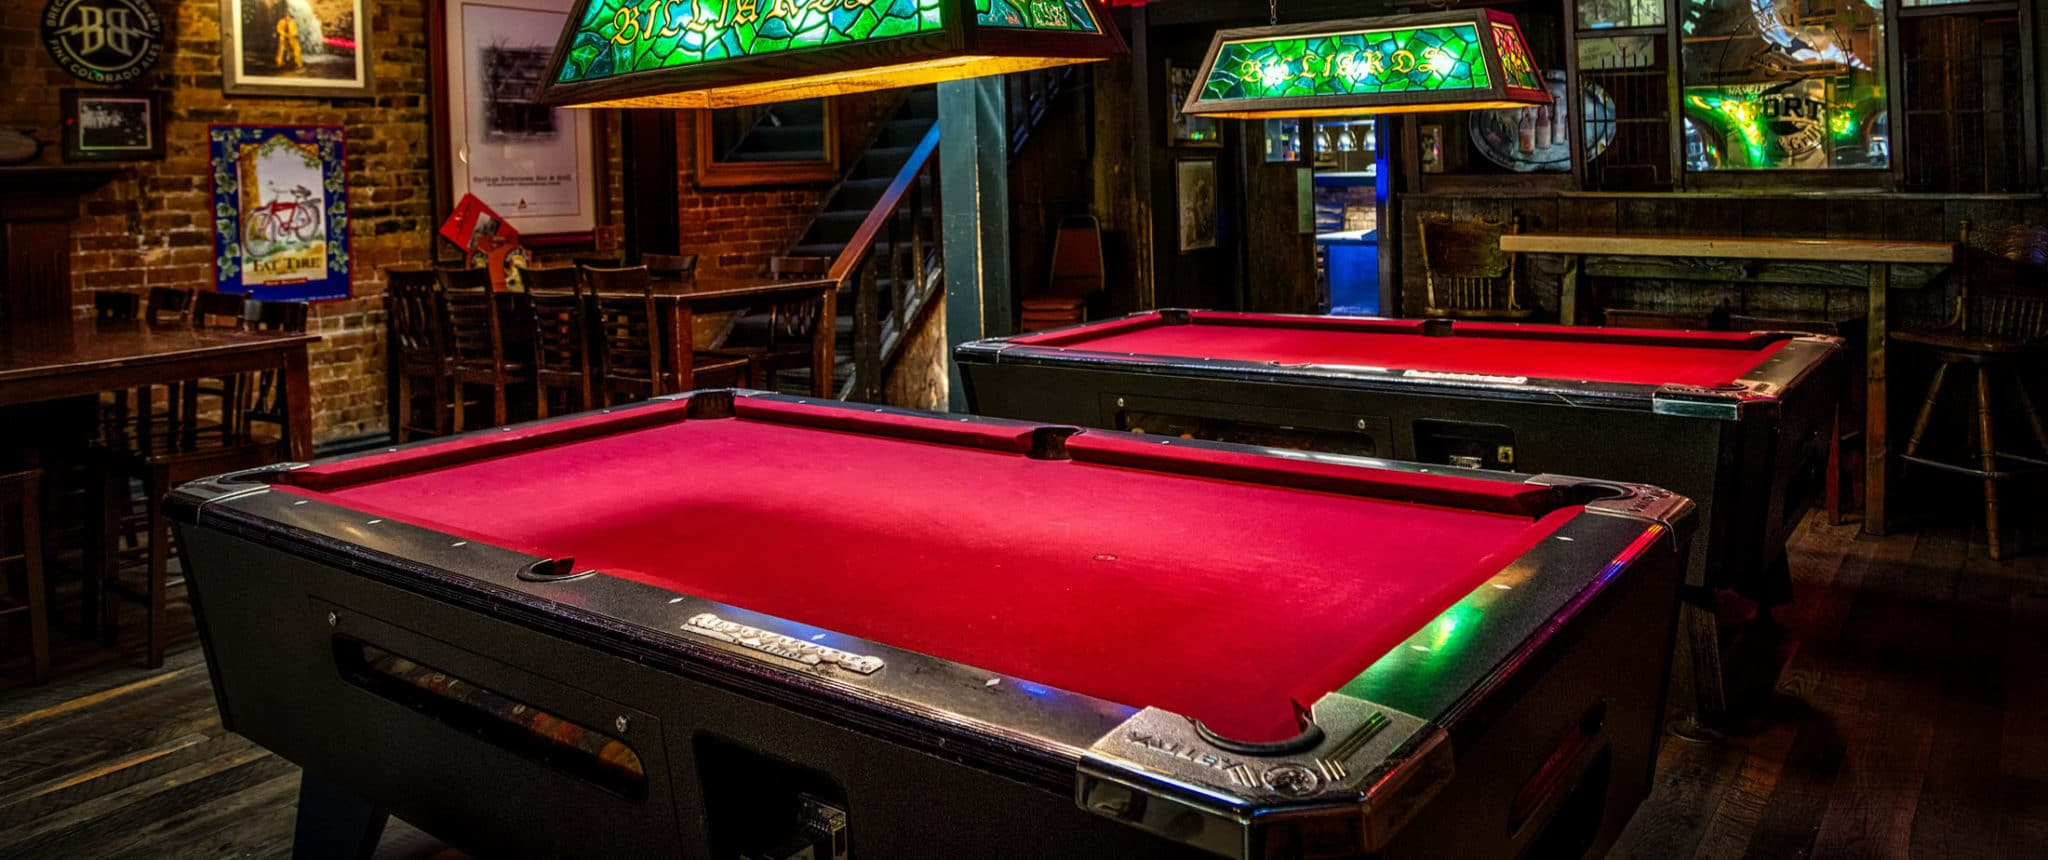 Pool Tables Atlanta Ga Best Home Interior - Pool table movers atlanta ga